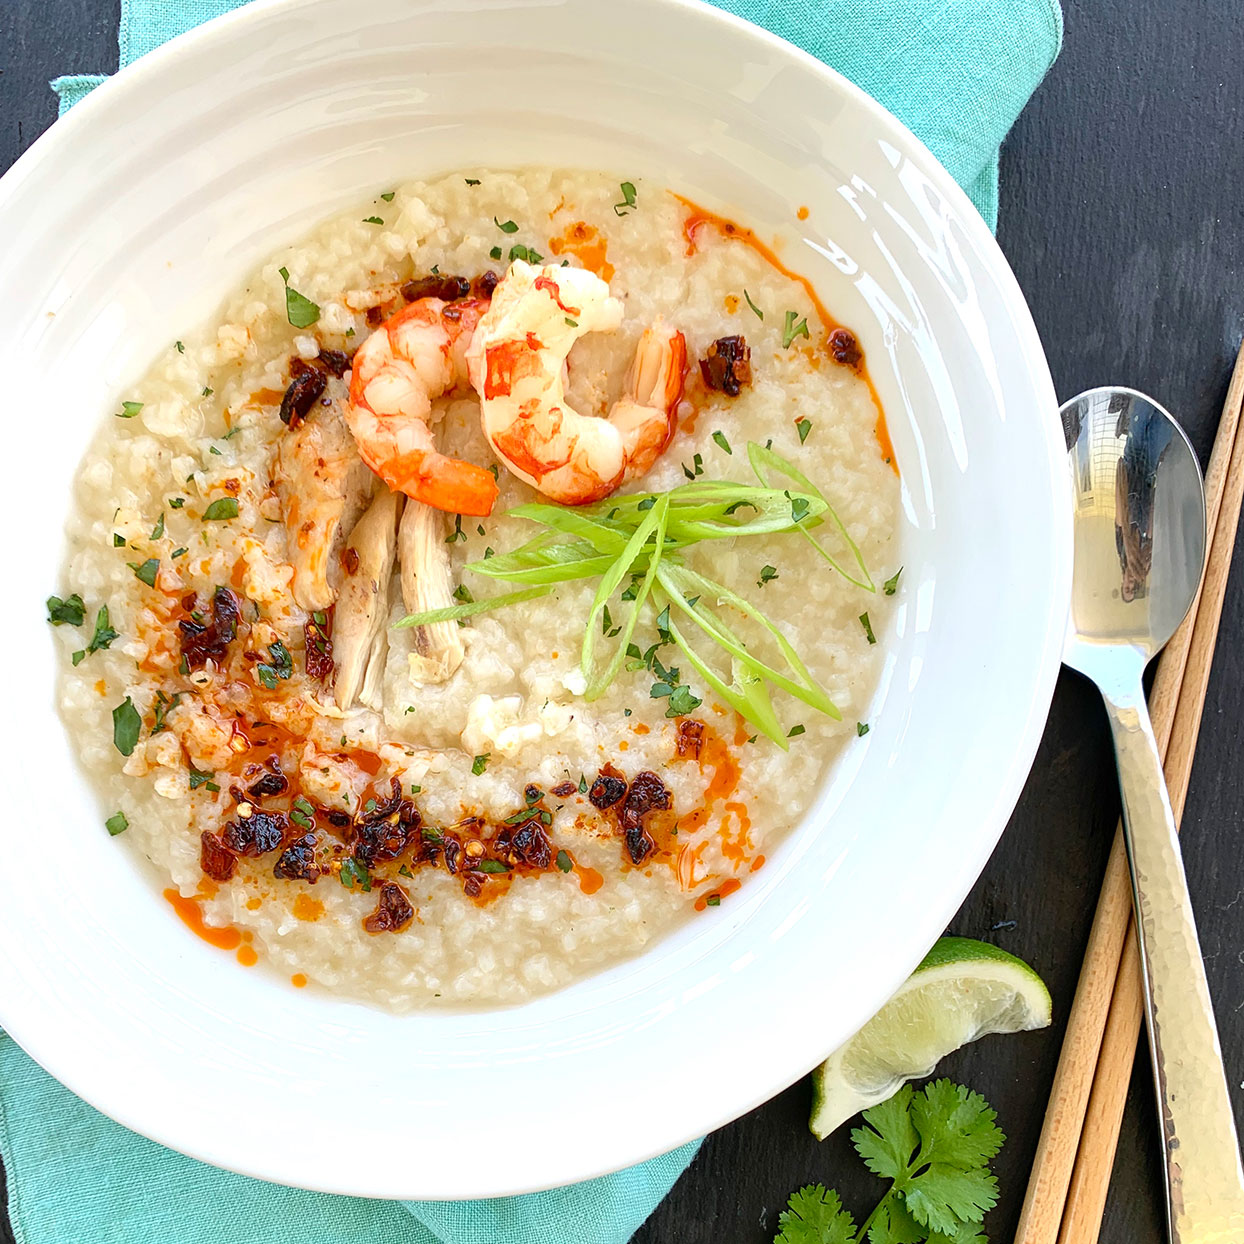 A bowl of congee with chicken, shrimp, lime and garnishes